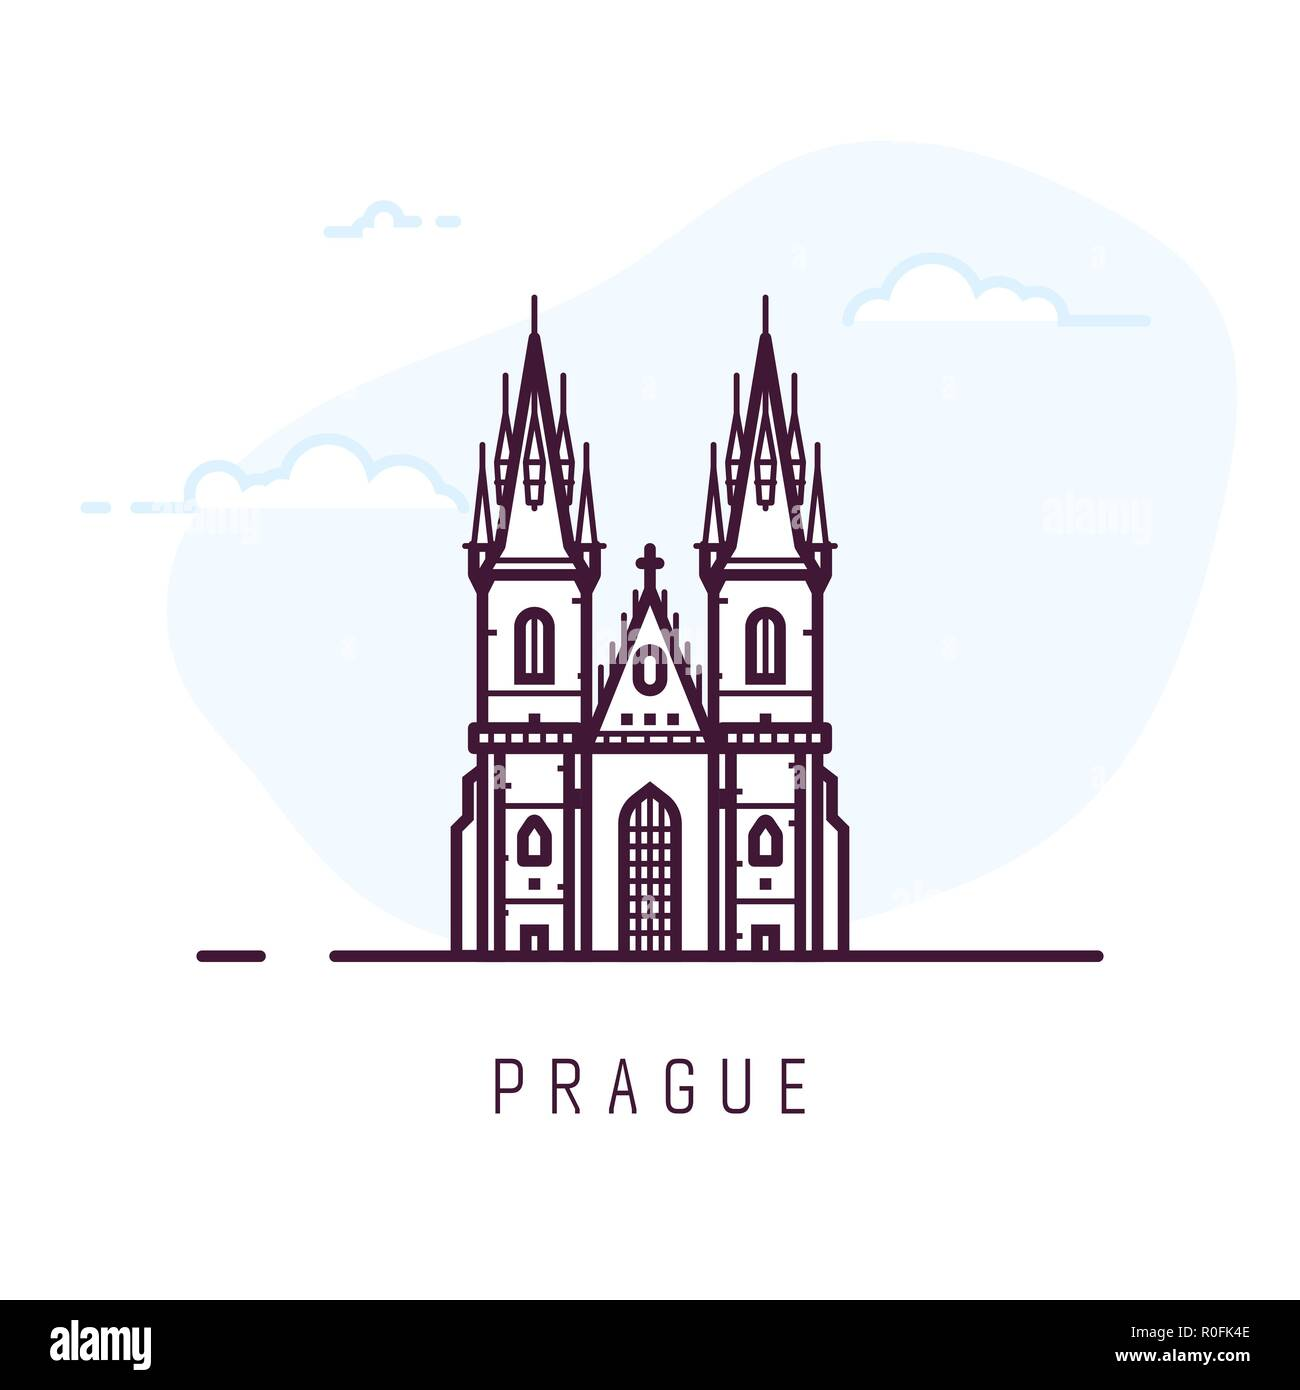 Prague city building - Stock Vector